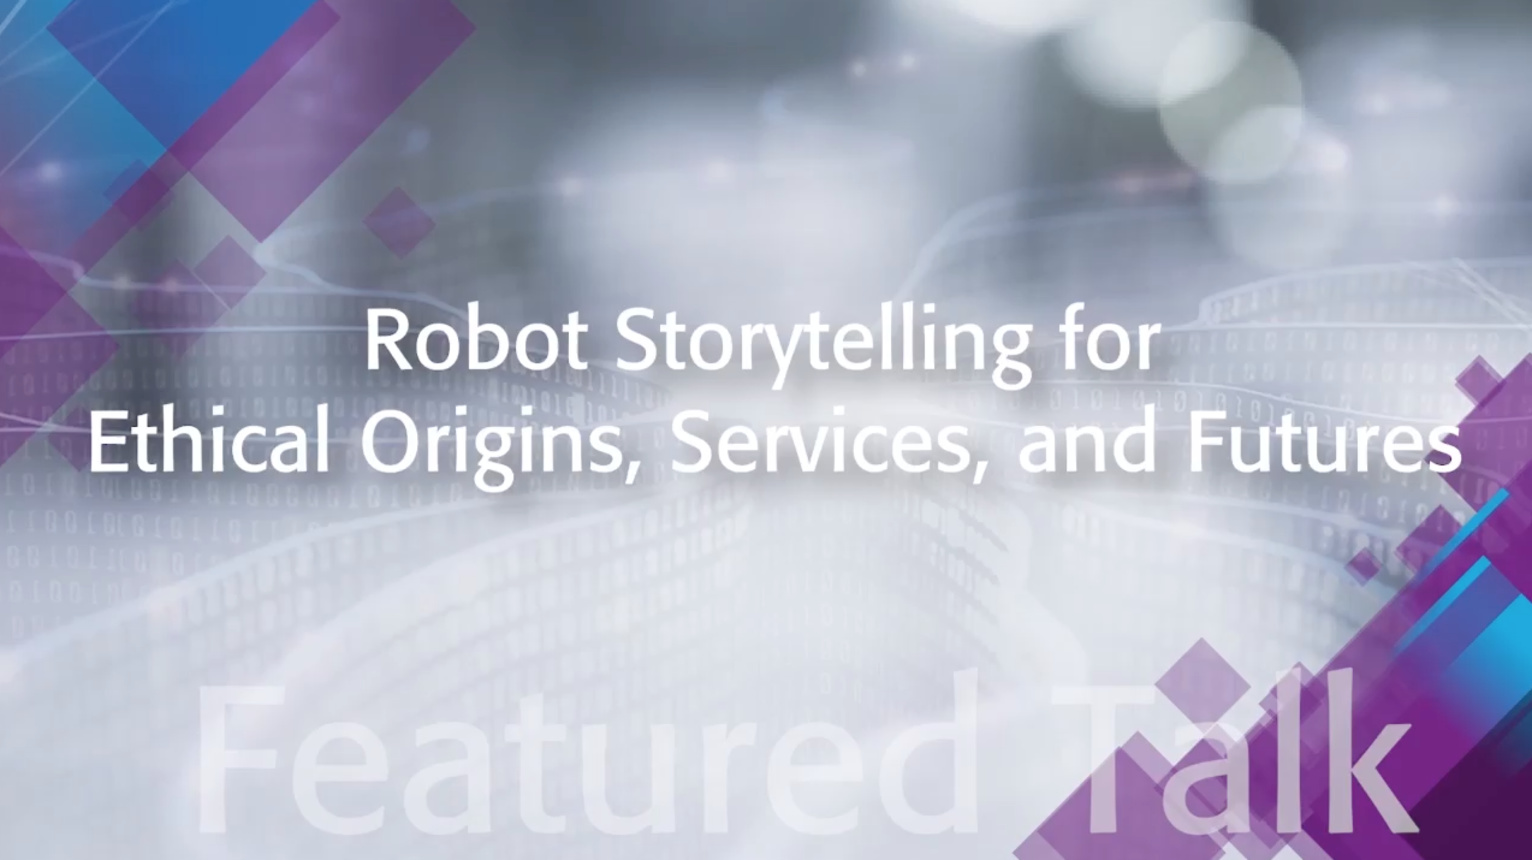 Robot Storytelling for Ethical Origins, Services, and Futures: IEEE TechEthics Featured Talk with Heather Knight